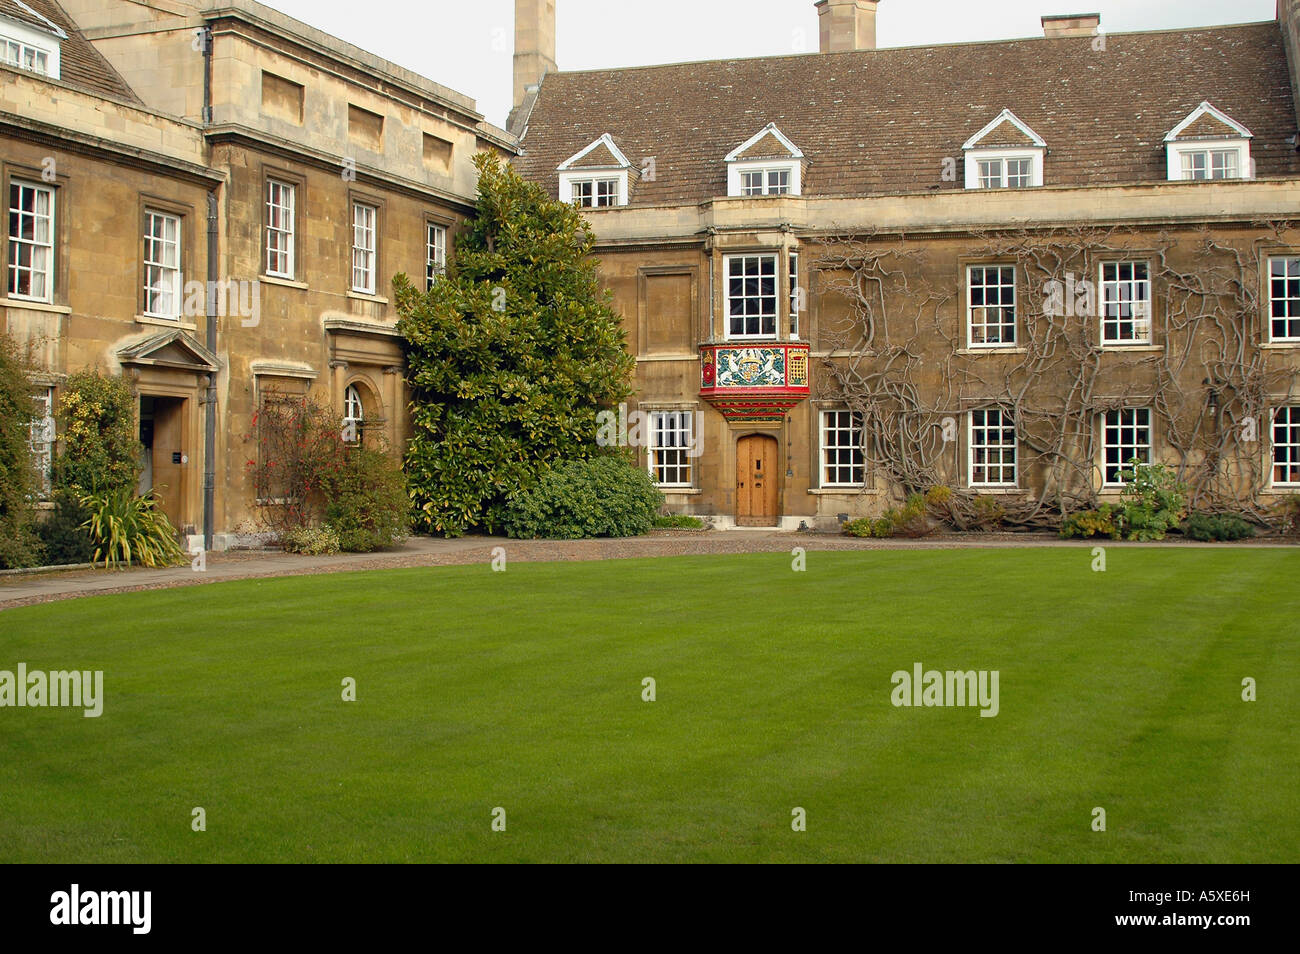 Painet iw1896 england cambridge university christs college first court masters lodge plain chapel 1500s area buildings - Stock Image